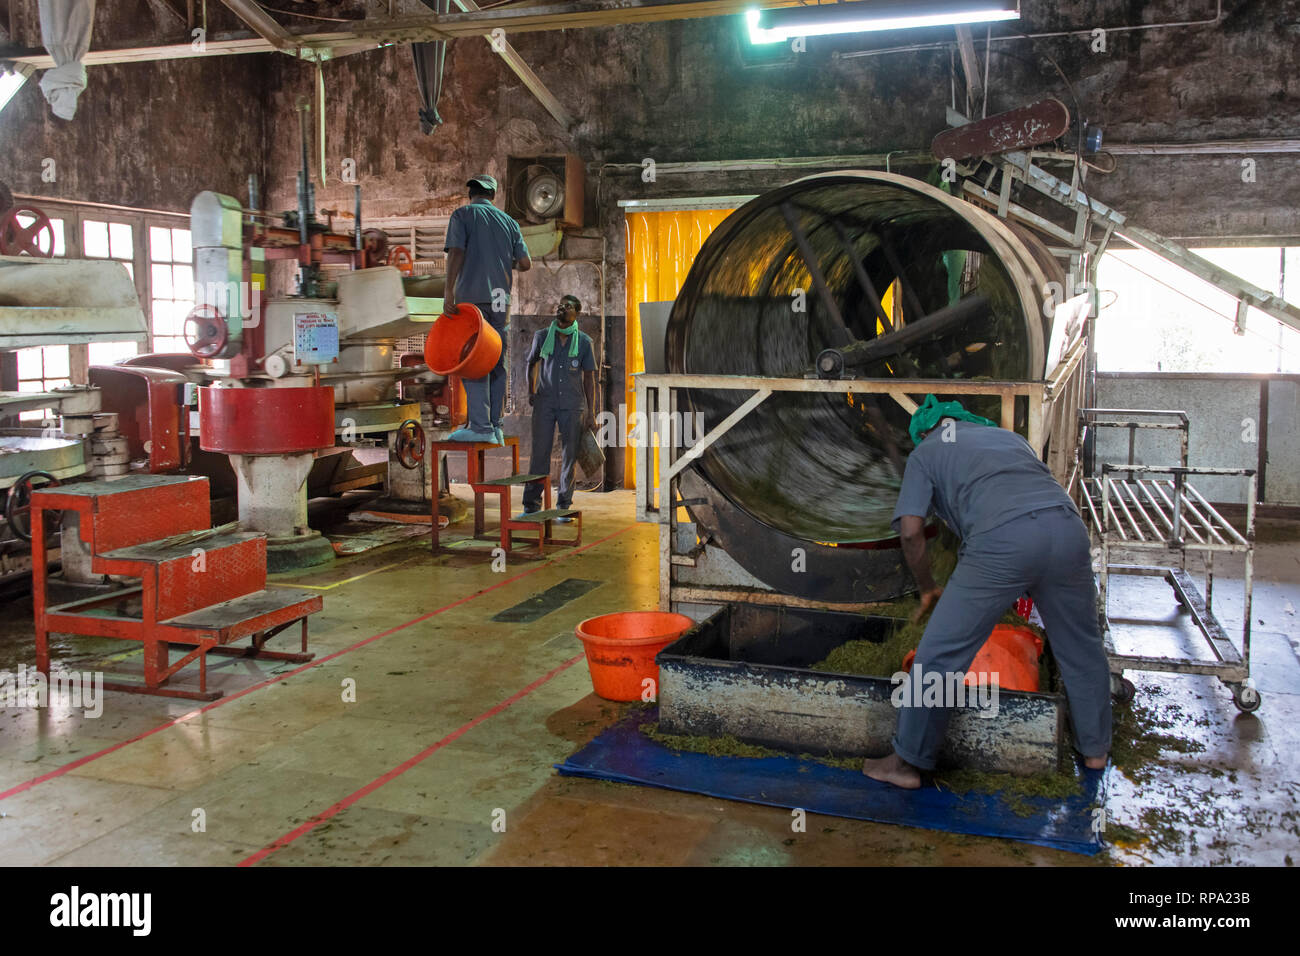 Workers at work in the Lockhart tea factory using traditional methods and machinery.  This is the drying process. Stock Photo